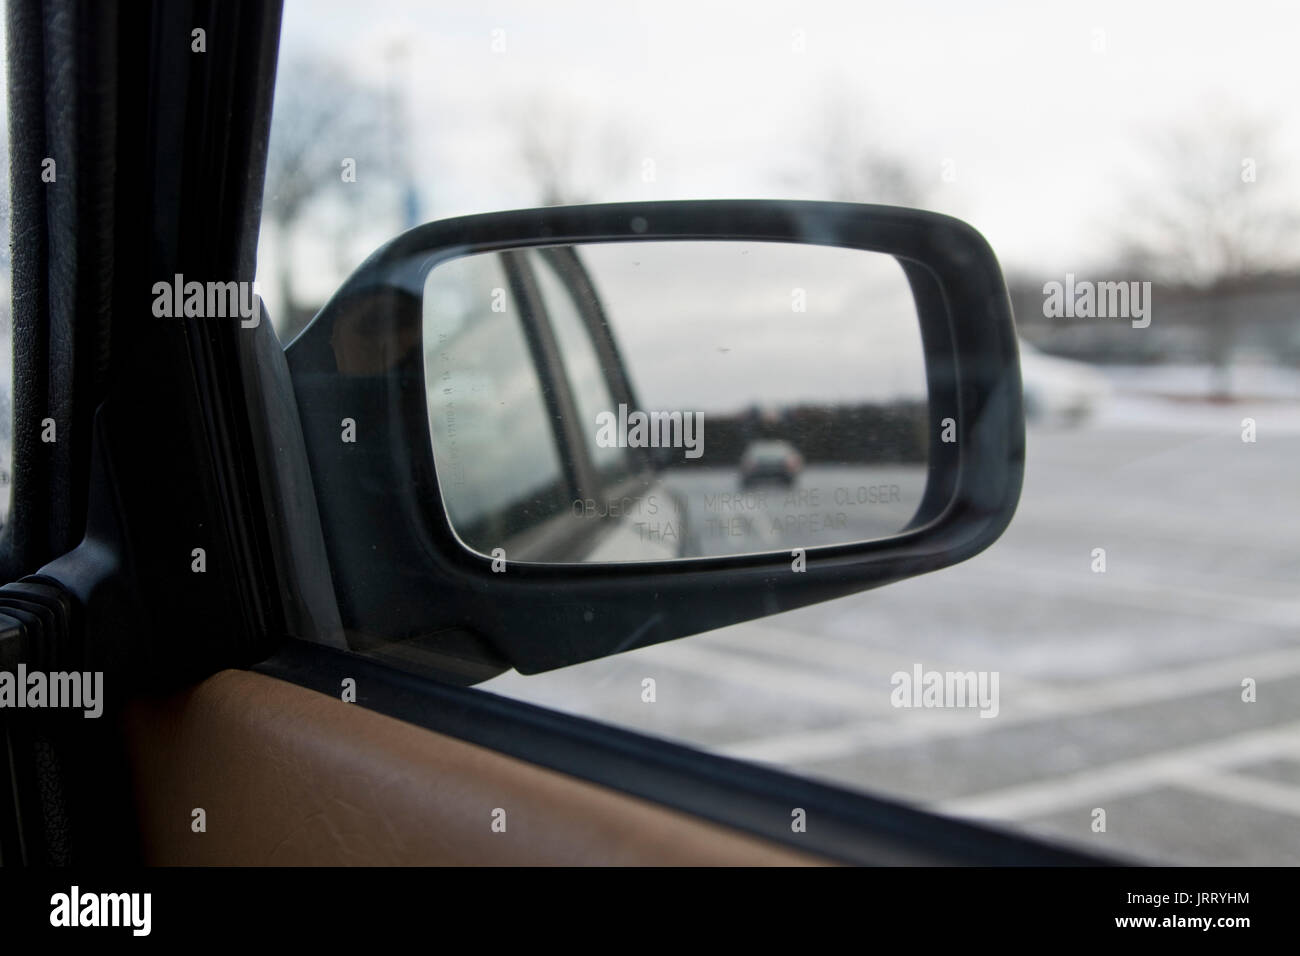 View of wing mirror reading 'Objects in mirror are closer than they appear', on parked car. - Stock Image